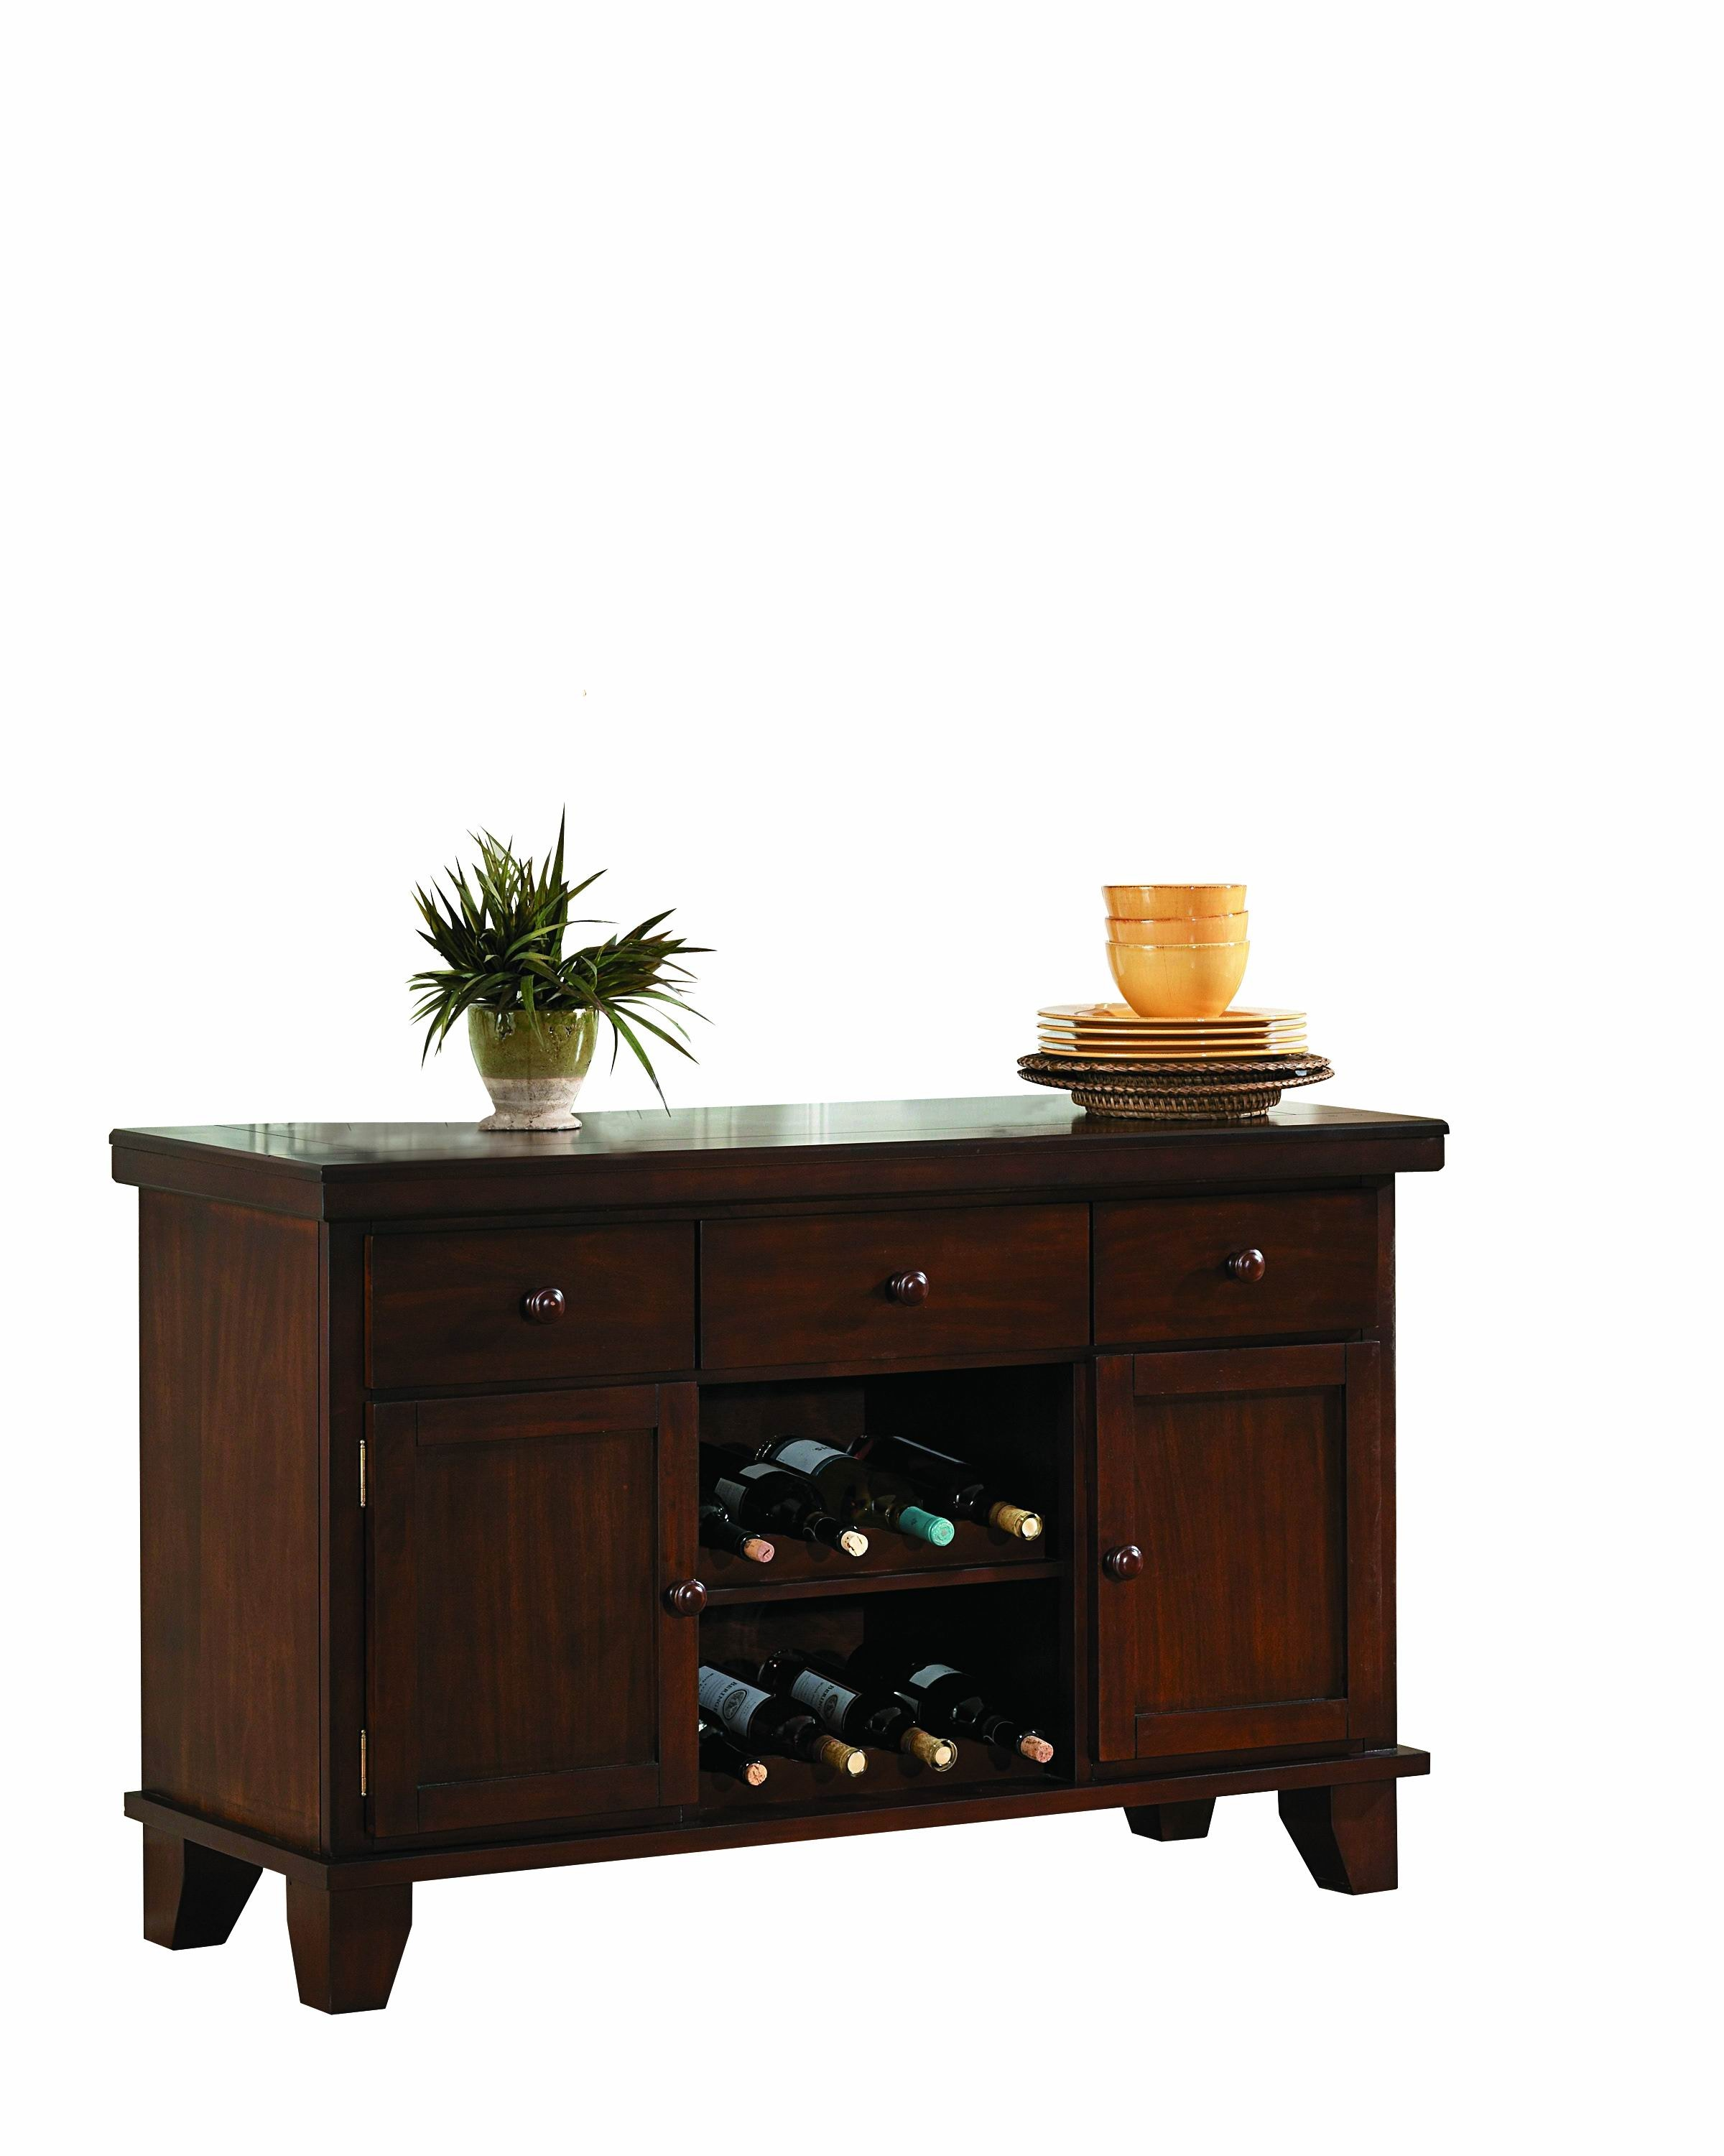 Dining room furniture server